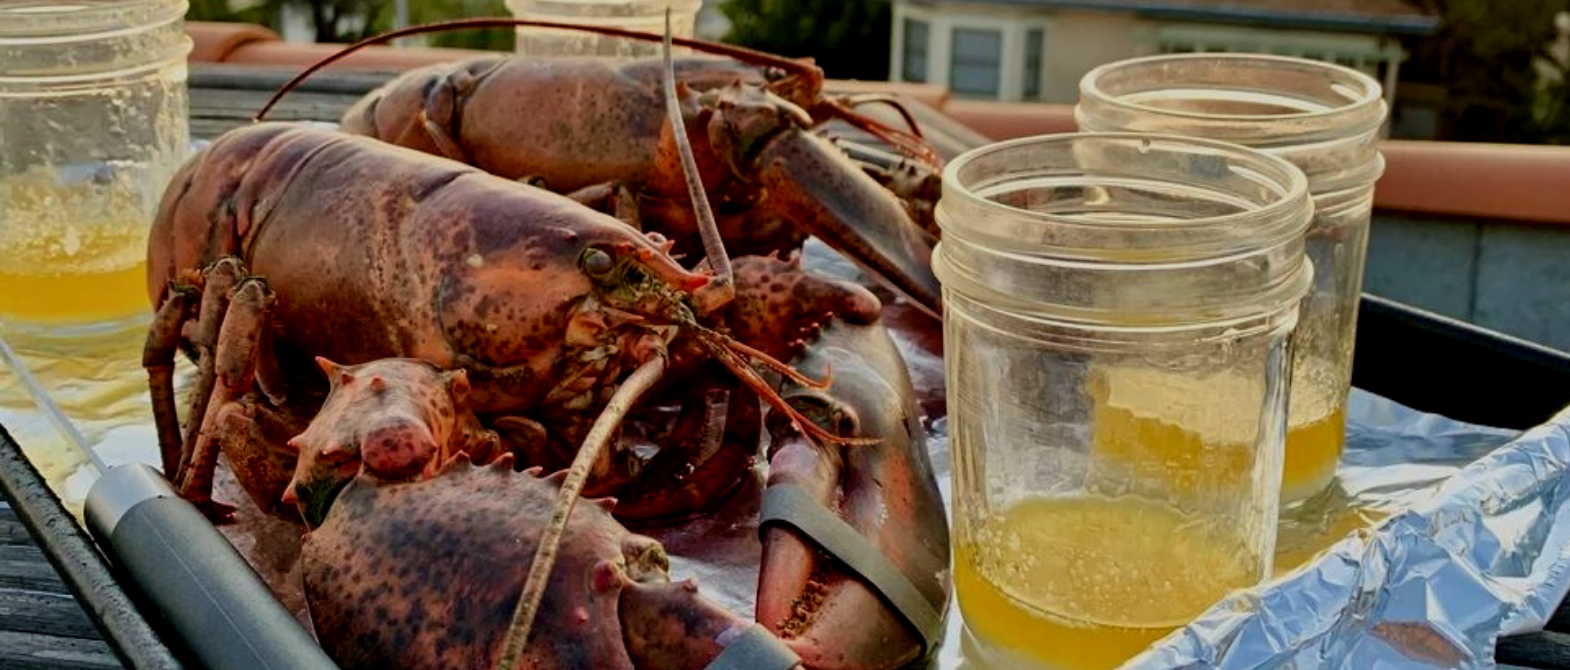 Wicked Maine Lobster